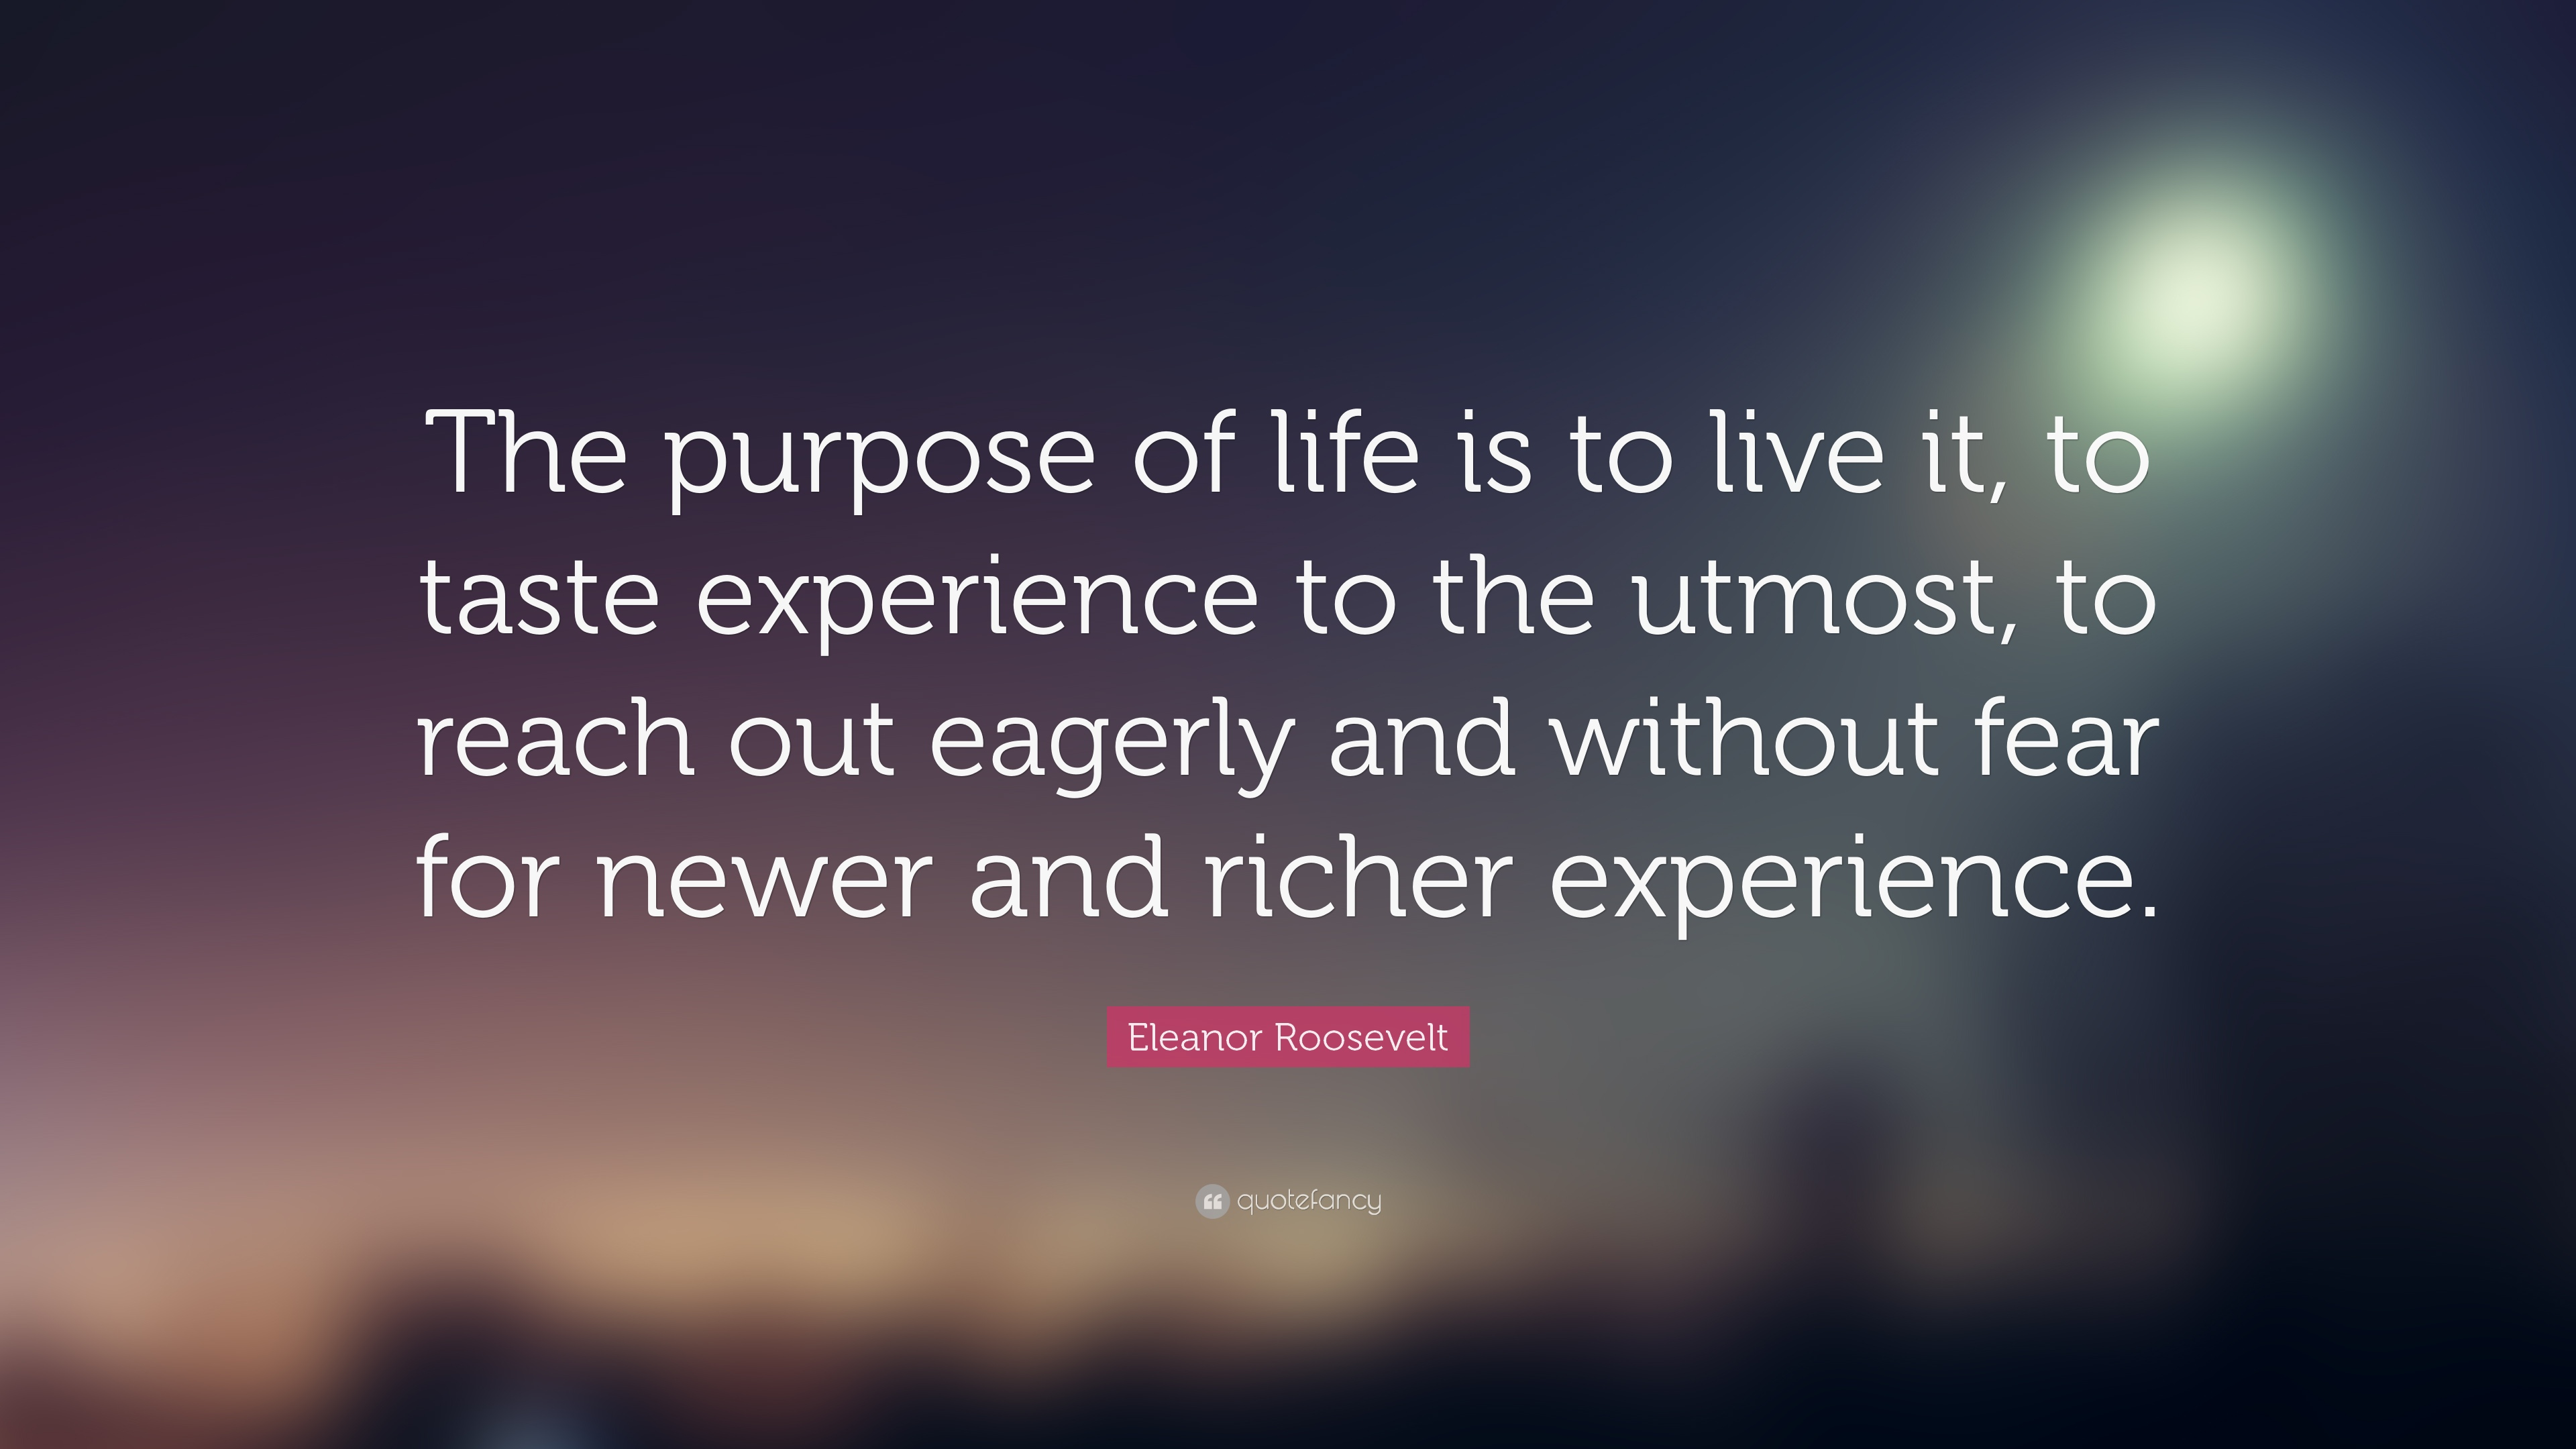 Eleanor Roosevelt Quote The Purpose Of Life Is To Live It To